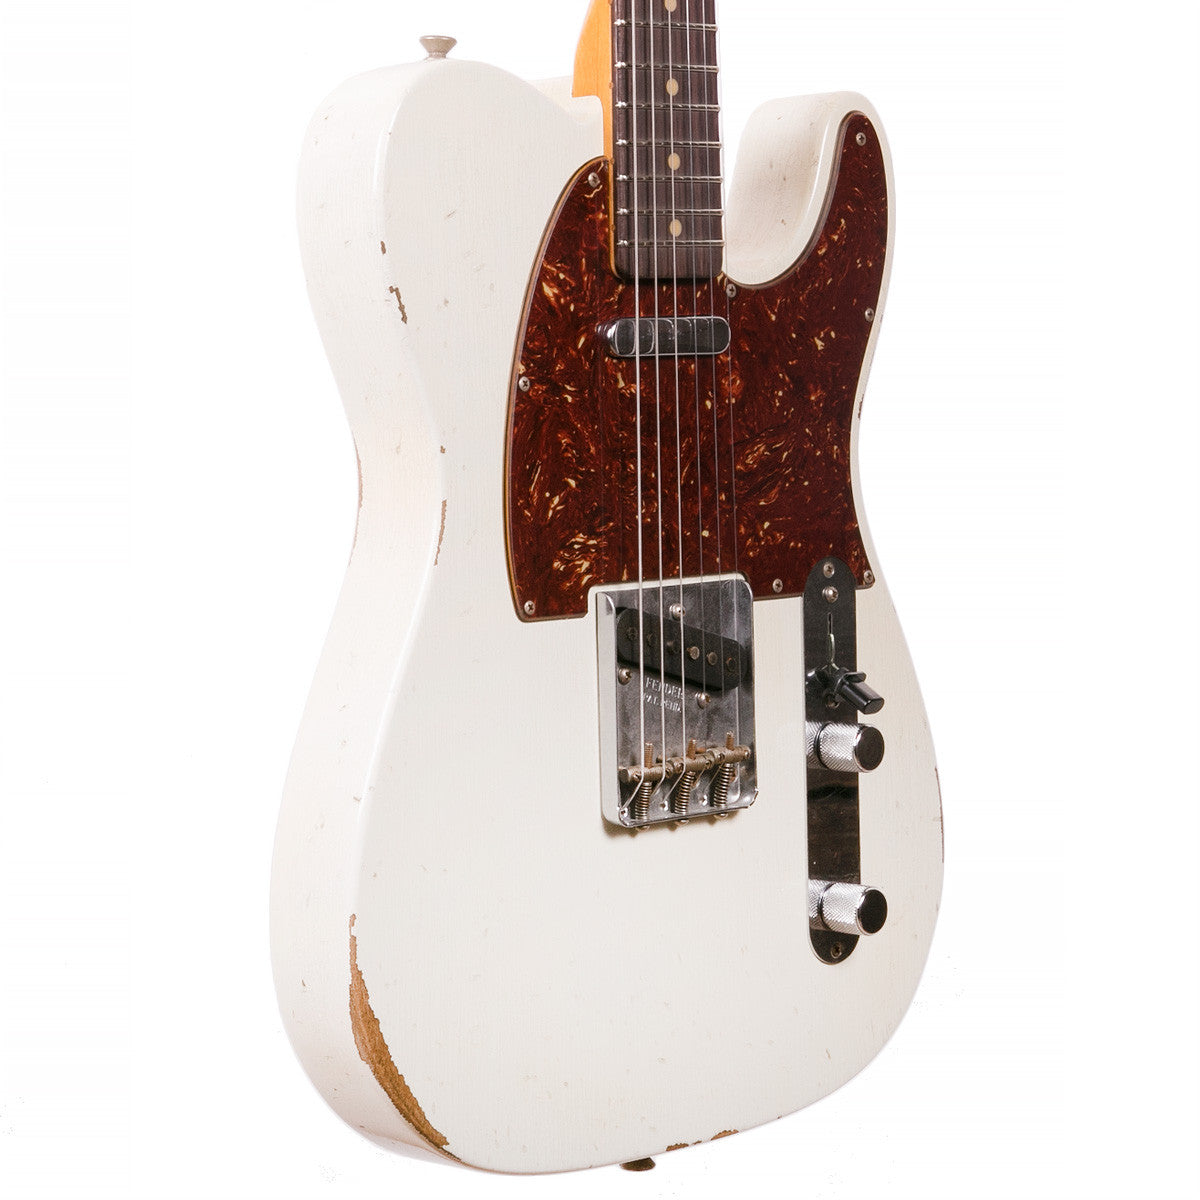 Fender Custom Shop - 1961 Relic Telecaster - Aged Olympic White - Vintage Guitar Boutique